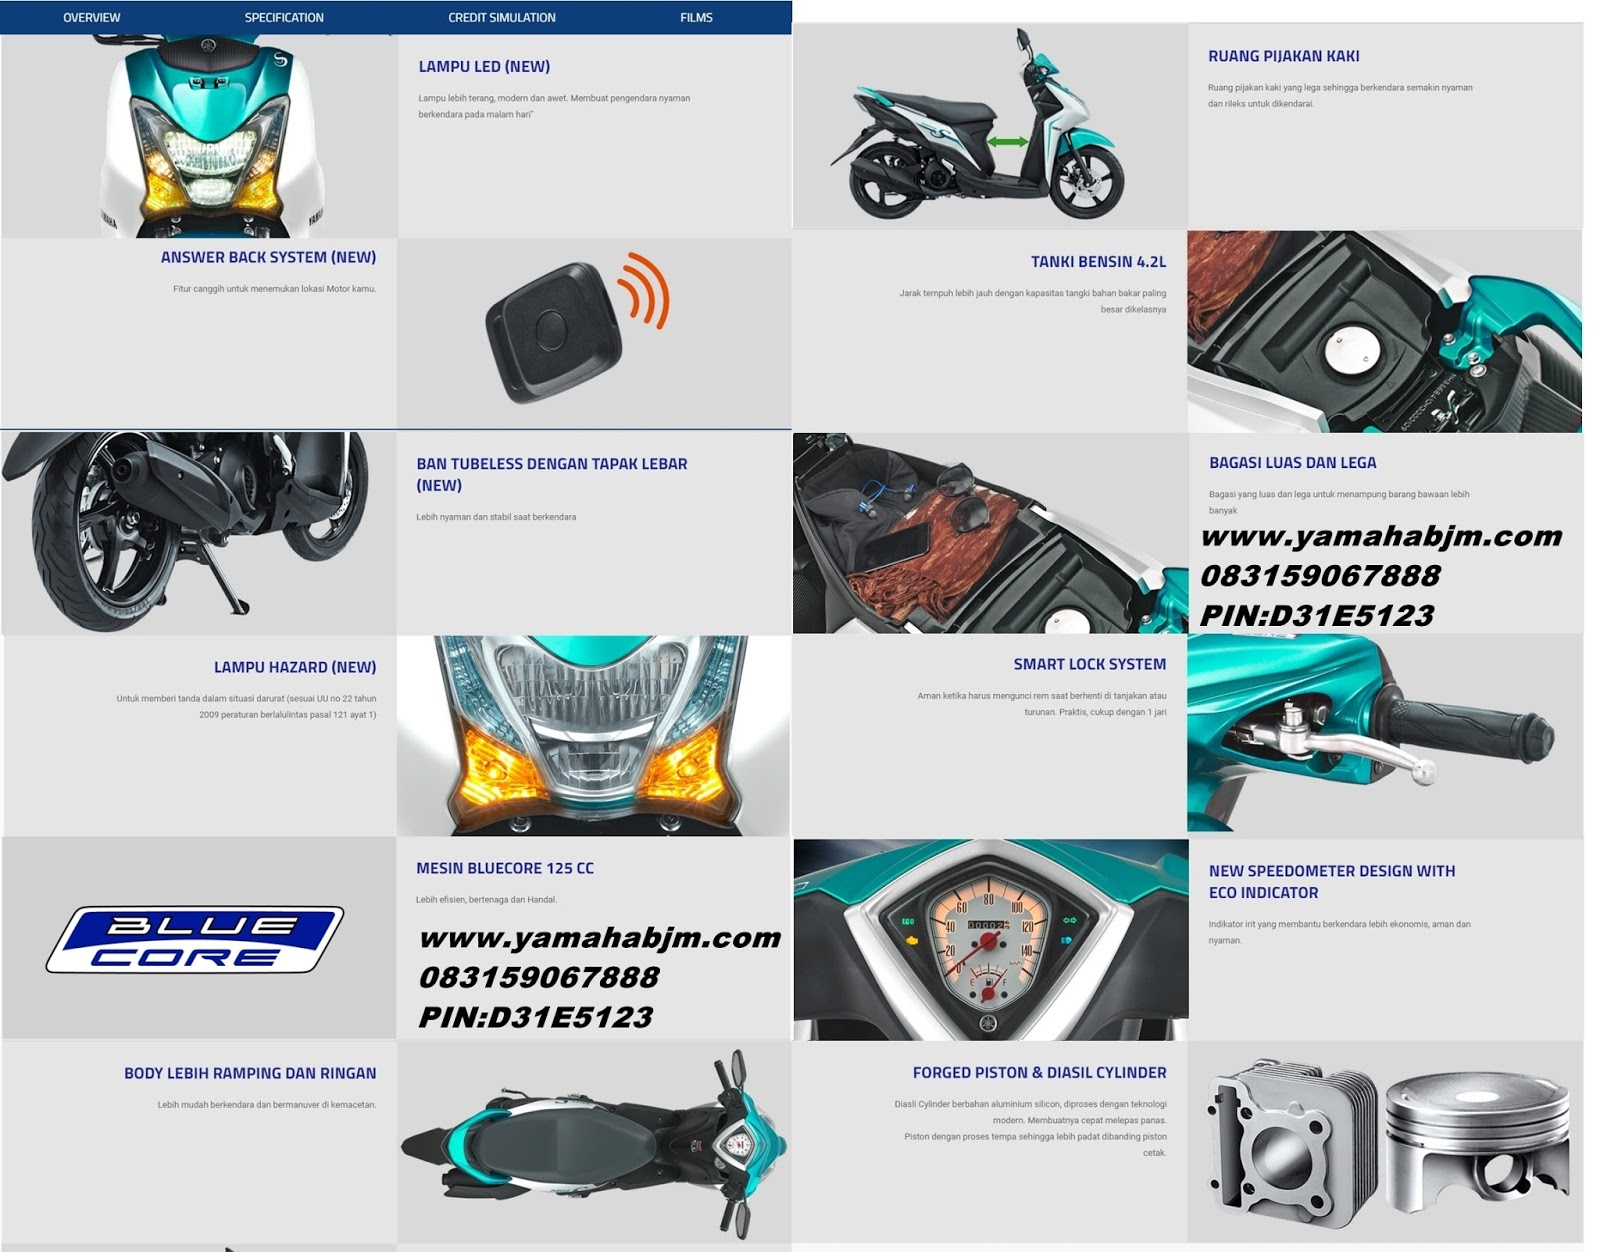 Harga Yamaha Mio S 125 Blue Core Dan Dealer Paling Murah New Fino Premium Diposting 27th October 2017 Oleh Resmi Sales Sevice Spare Part Variasi Motor Label